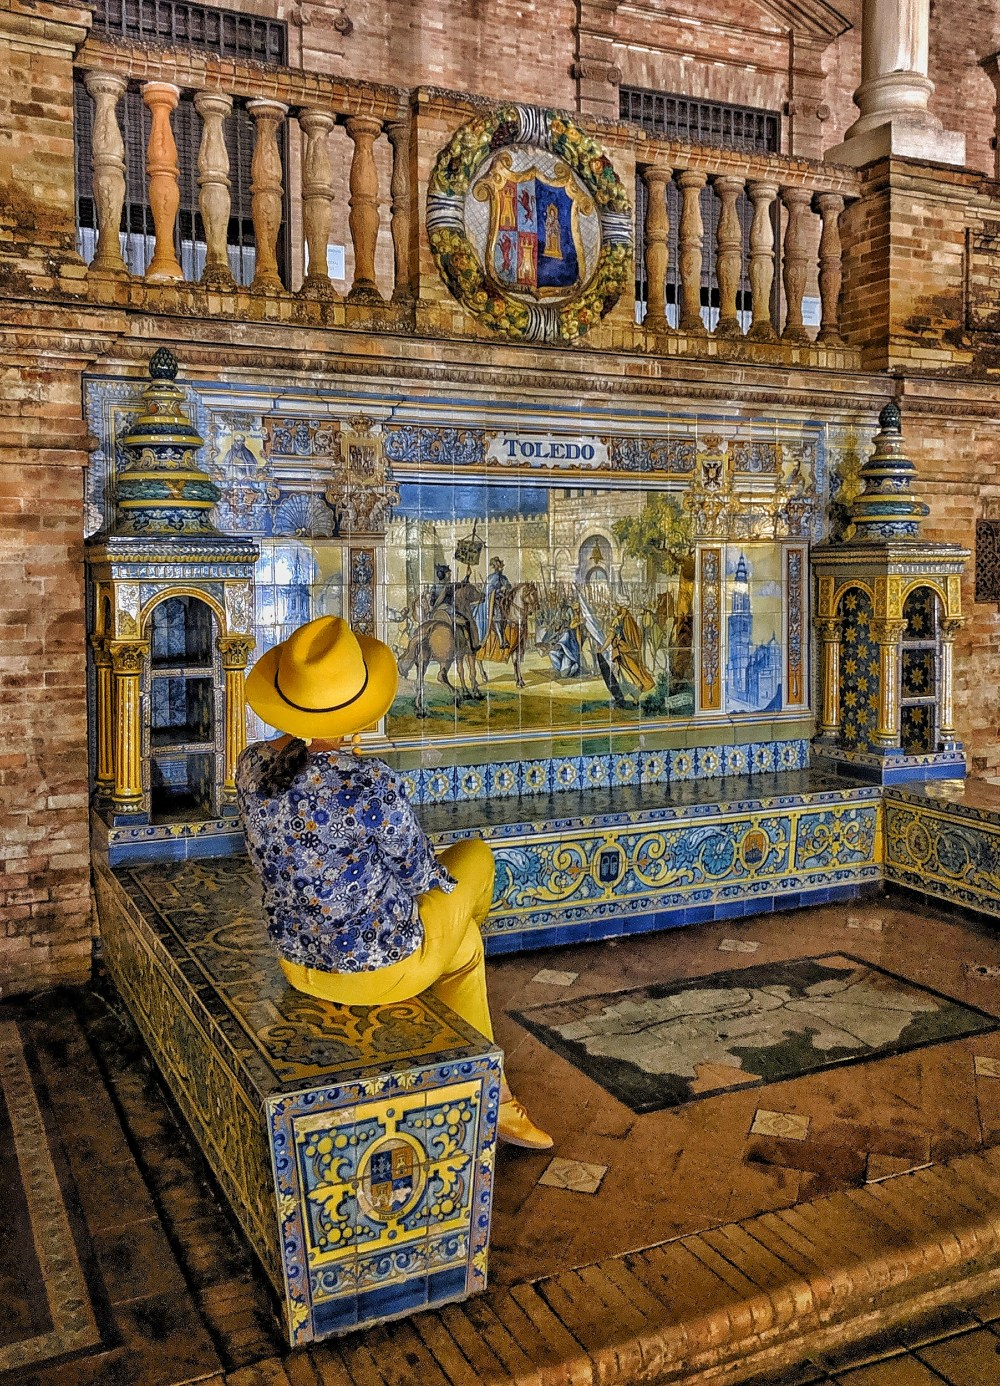 Must-see in Seville. Plaza de Espana tile work.